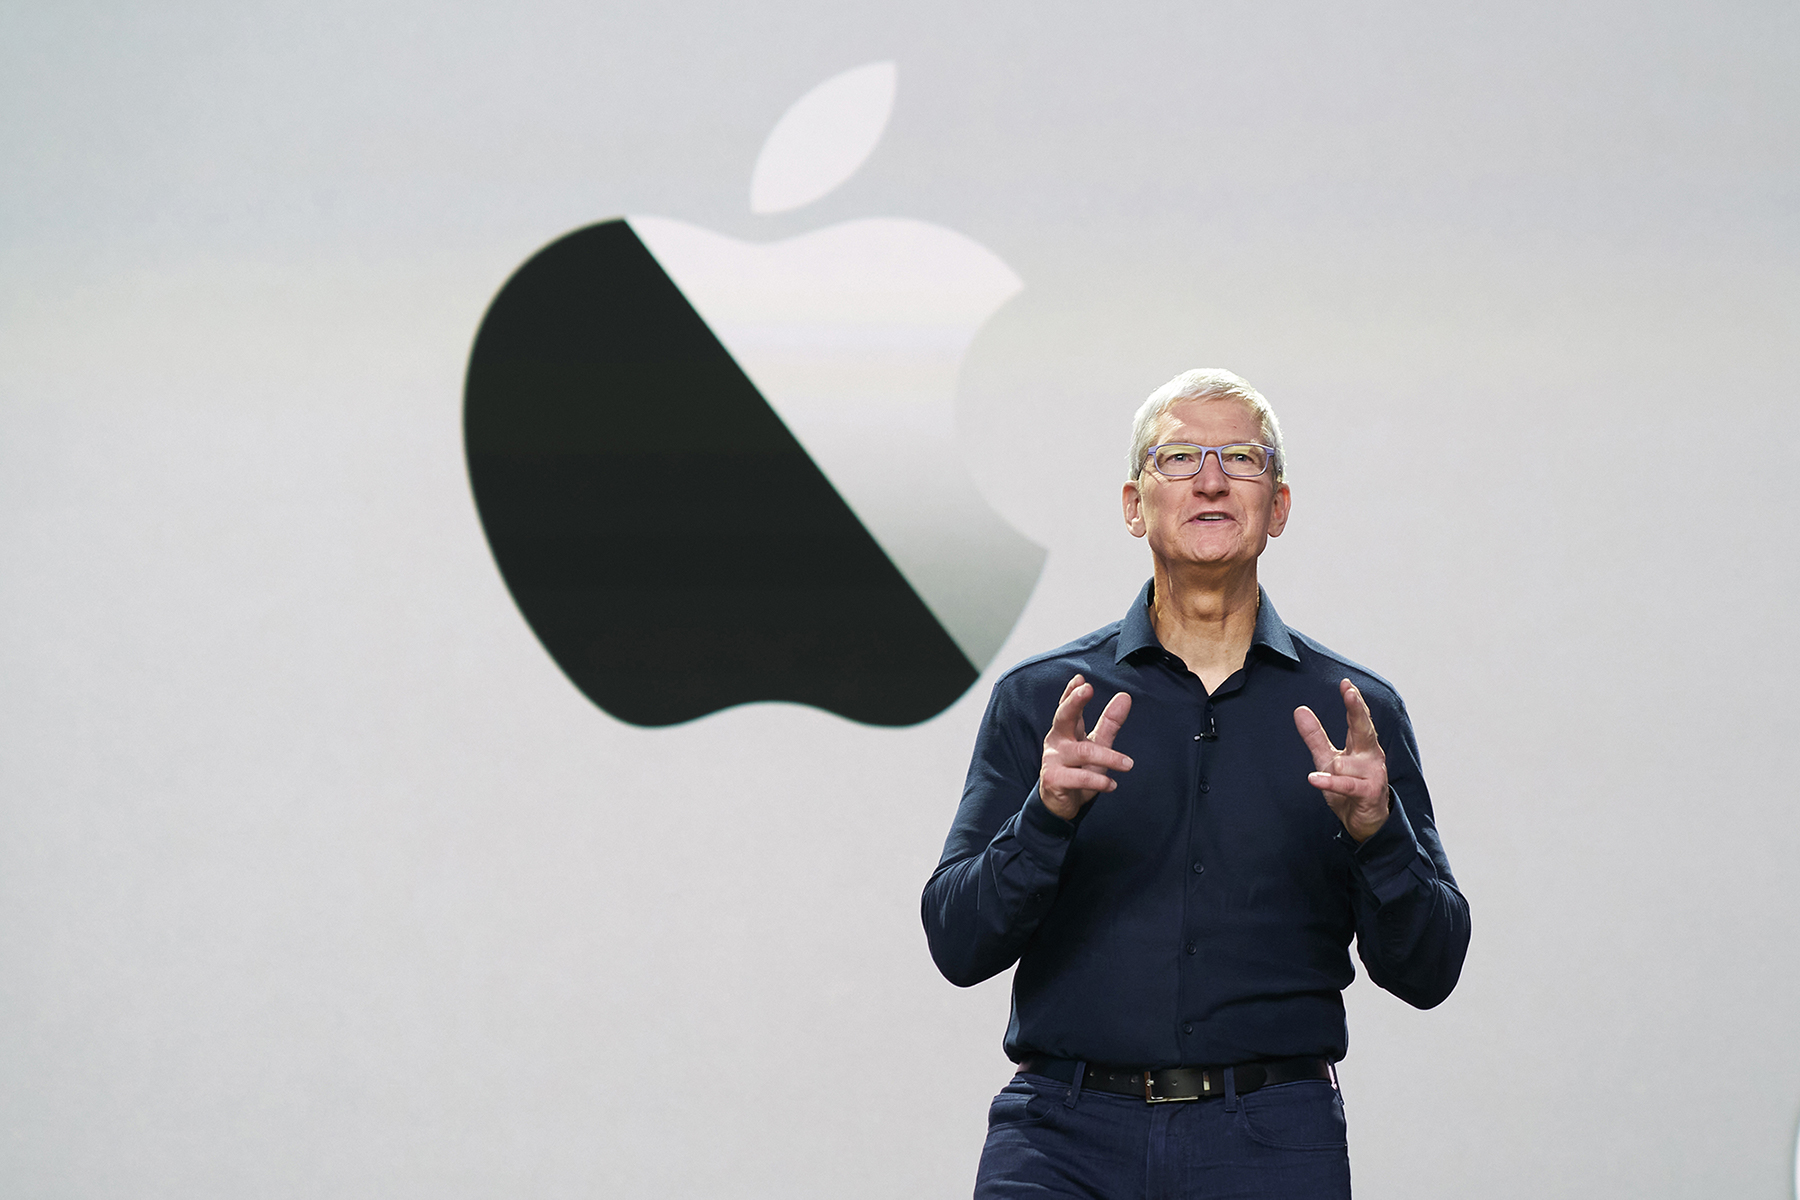 What does Tim Cook have up his sleeves this year?